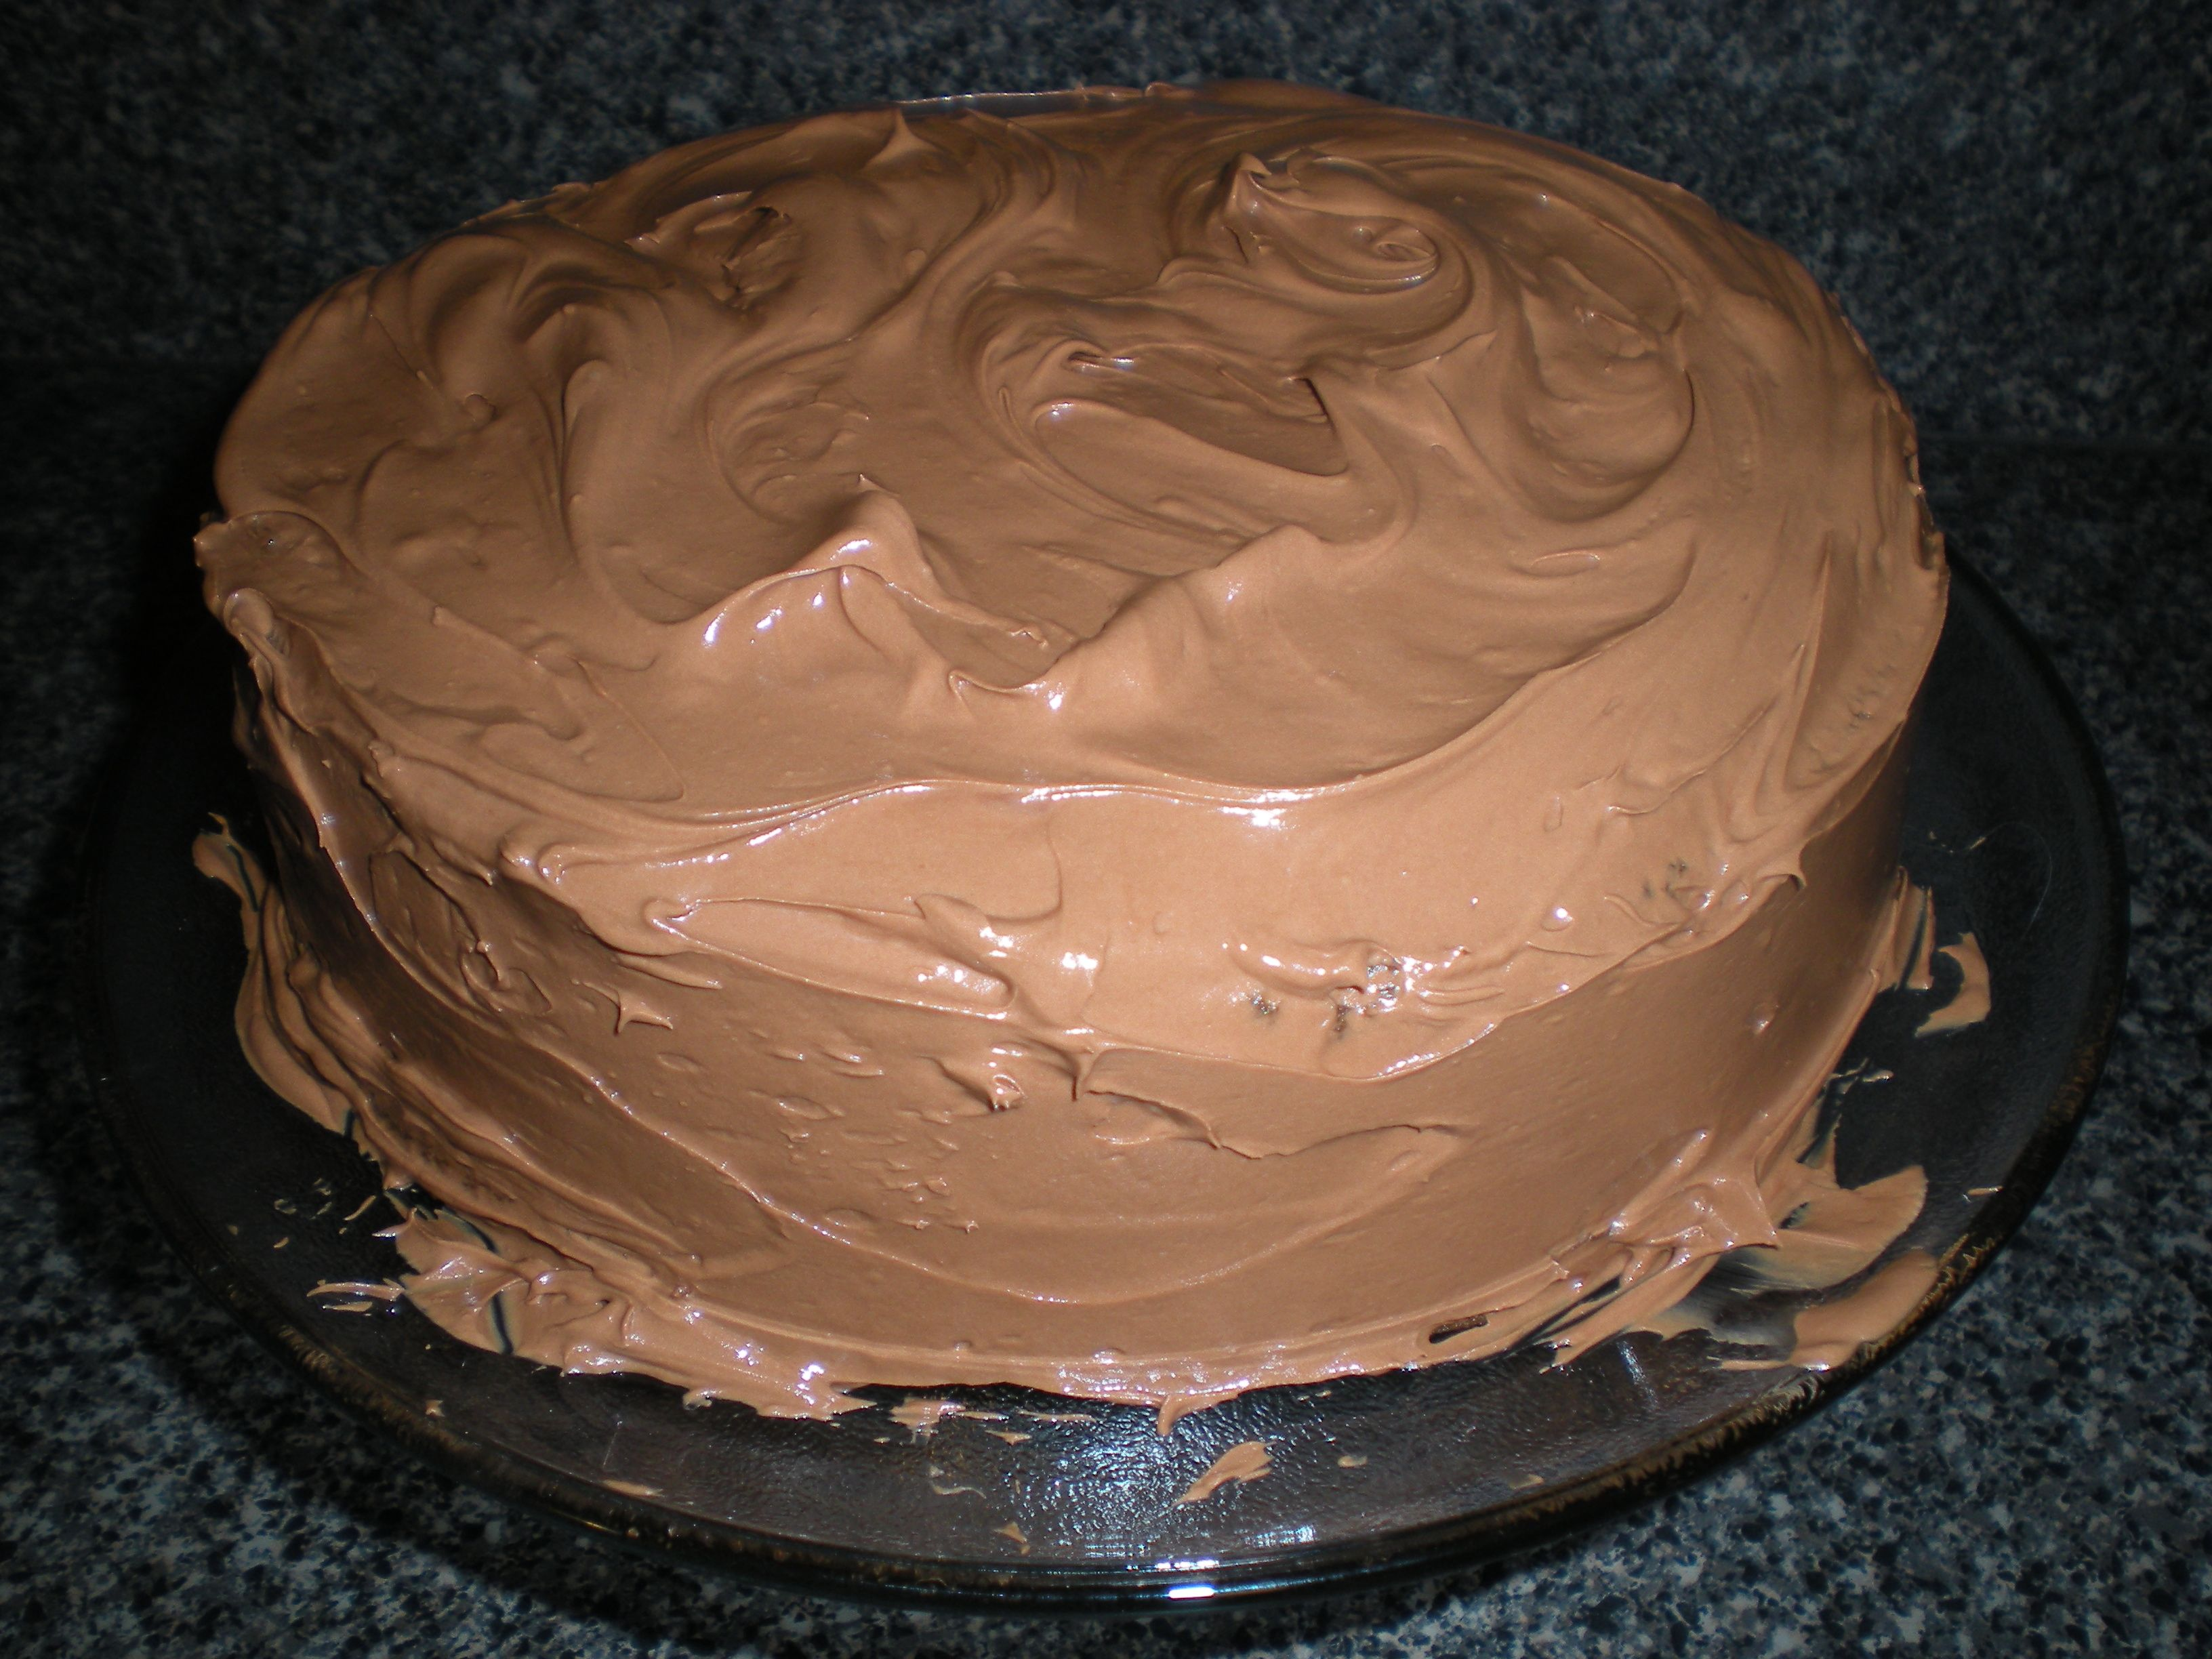 Dashiell's homemade chocolate birthday cake